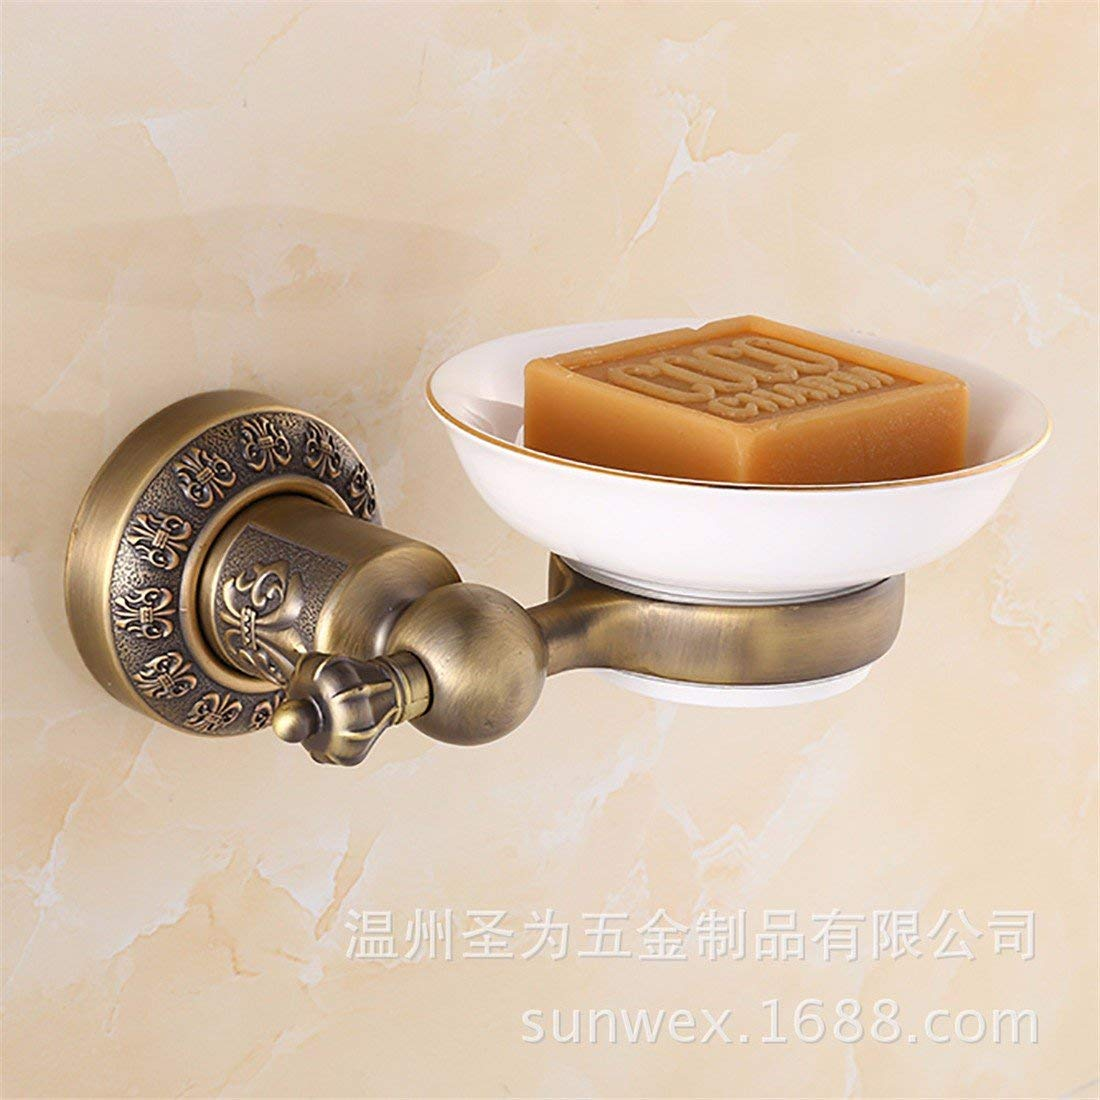 LAONA European style antique bronze carving, zinc alloy bathroom fittings, towel bar, toilet paper rack,Soap dish B